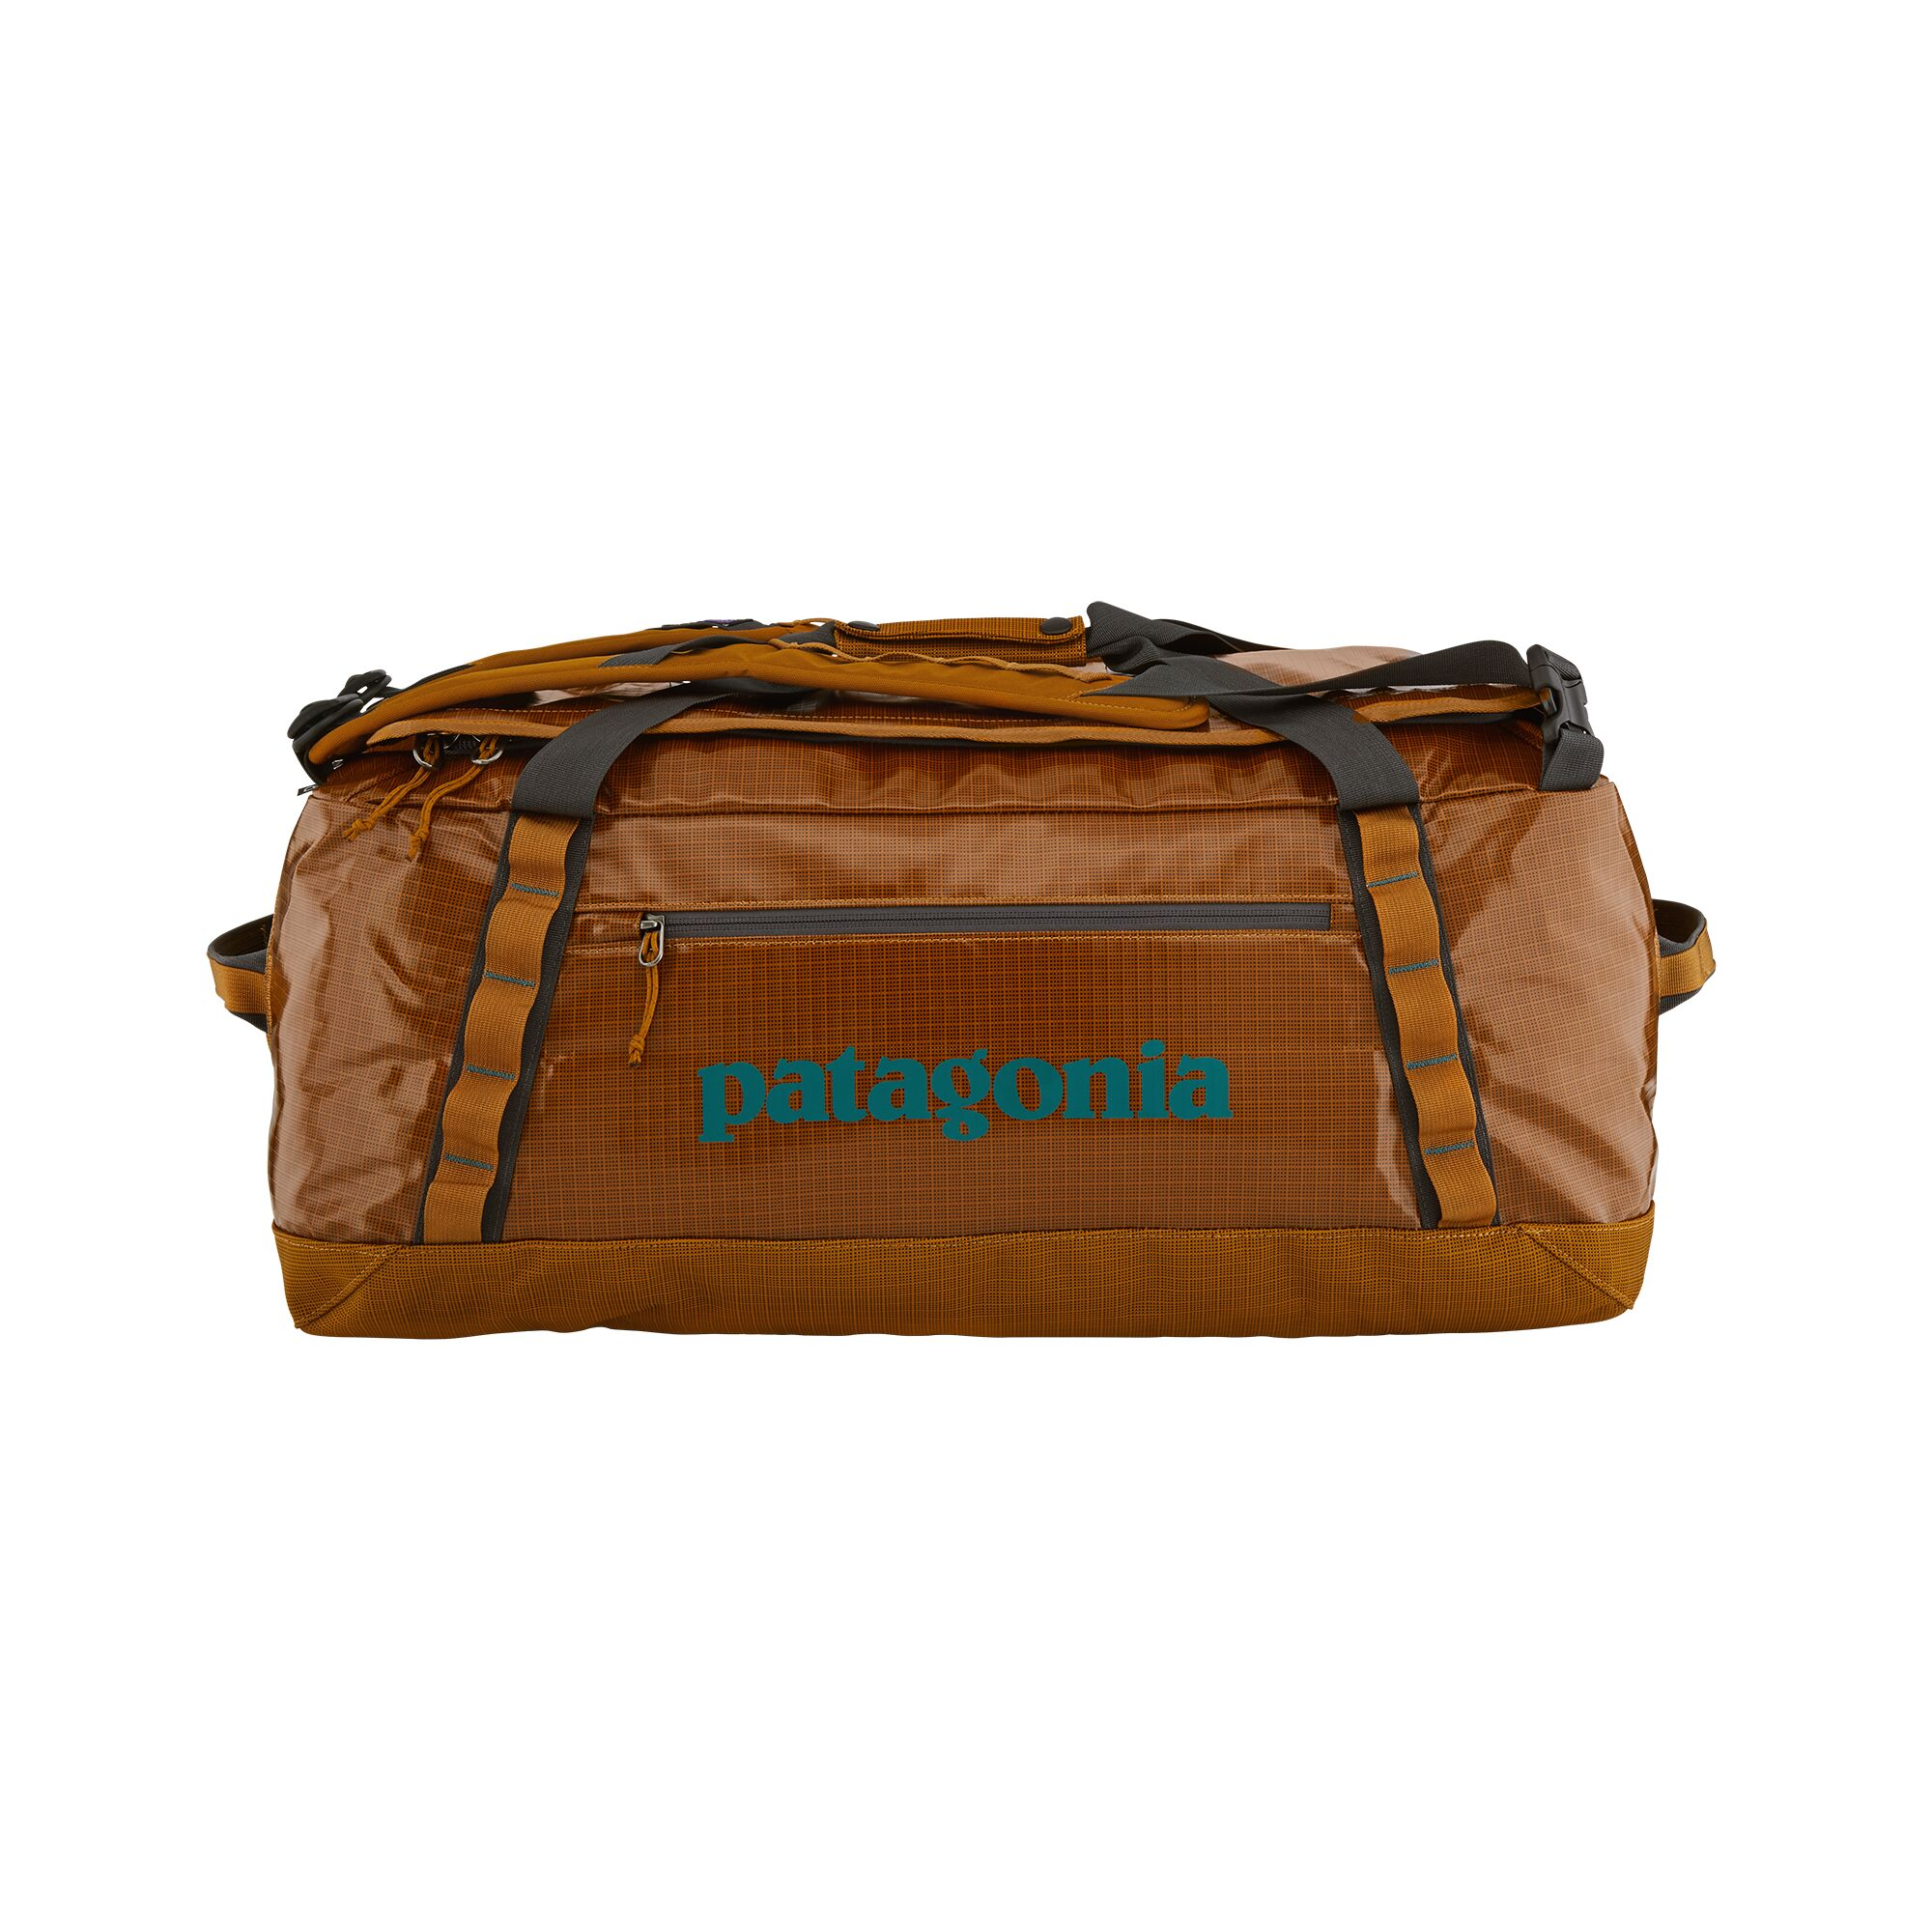 Patagonia Black Hole 55L Duffel (sponsored)